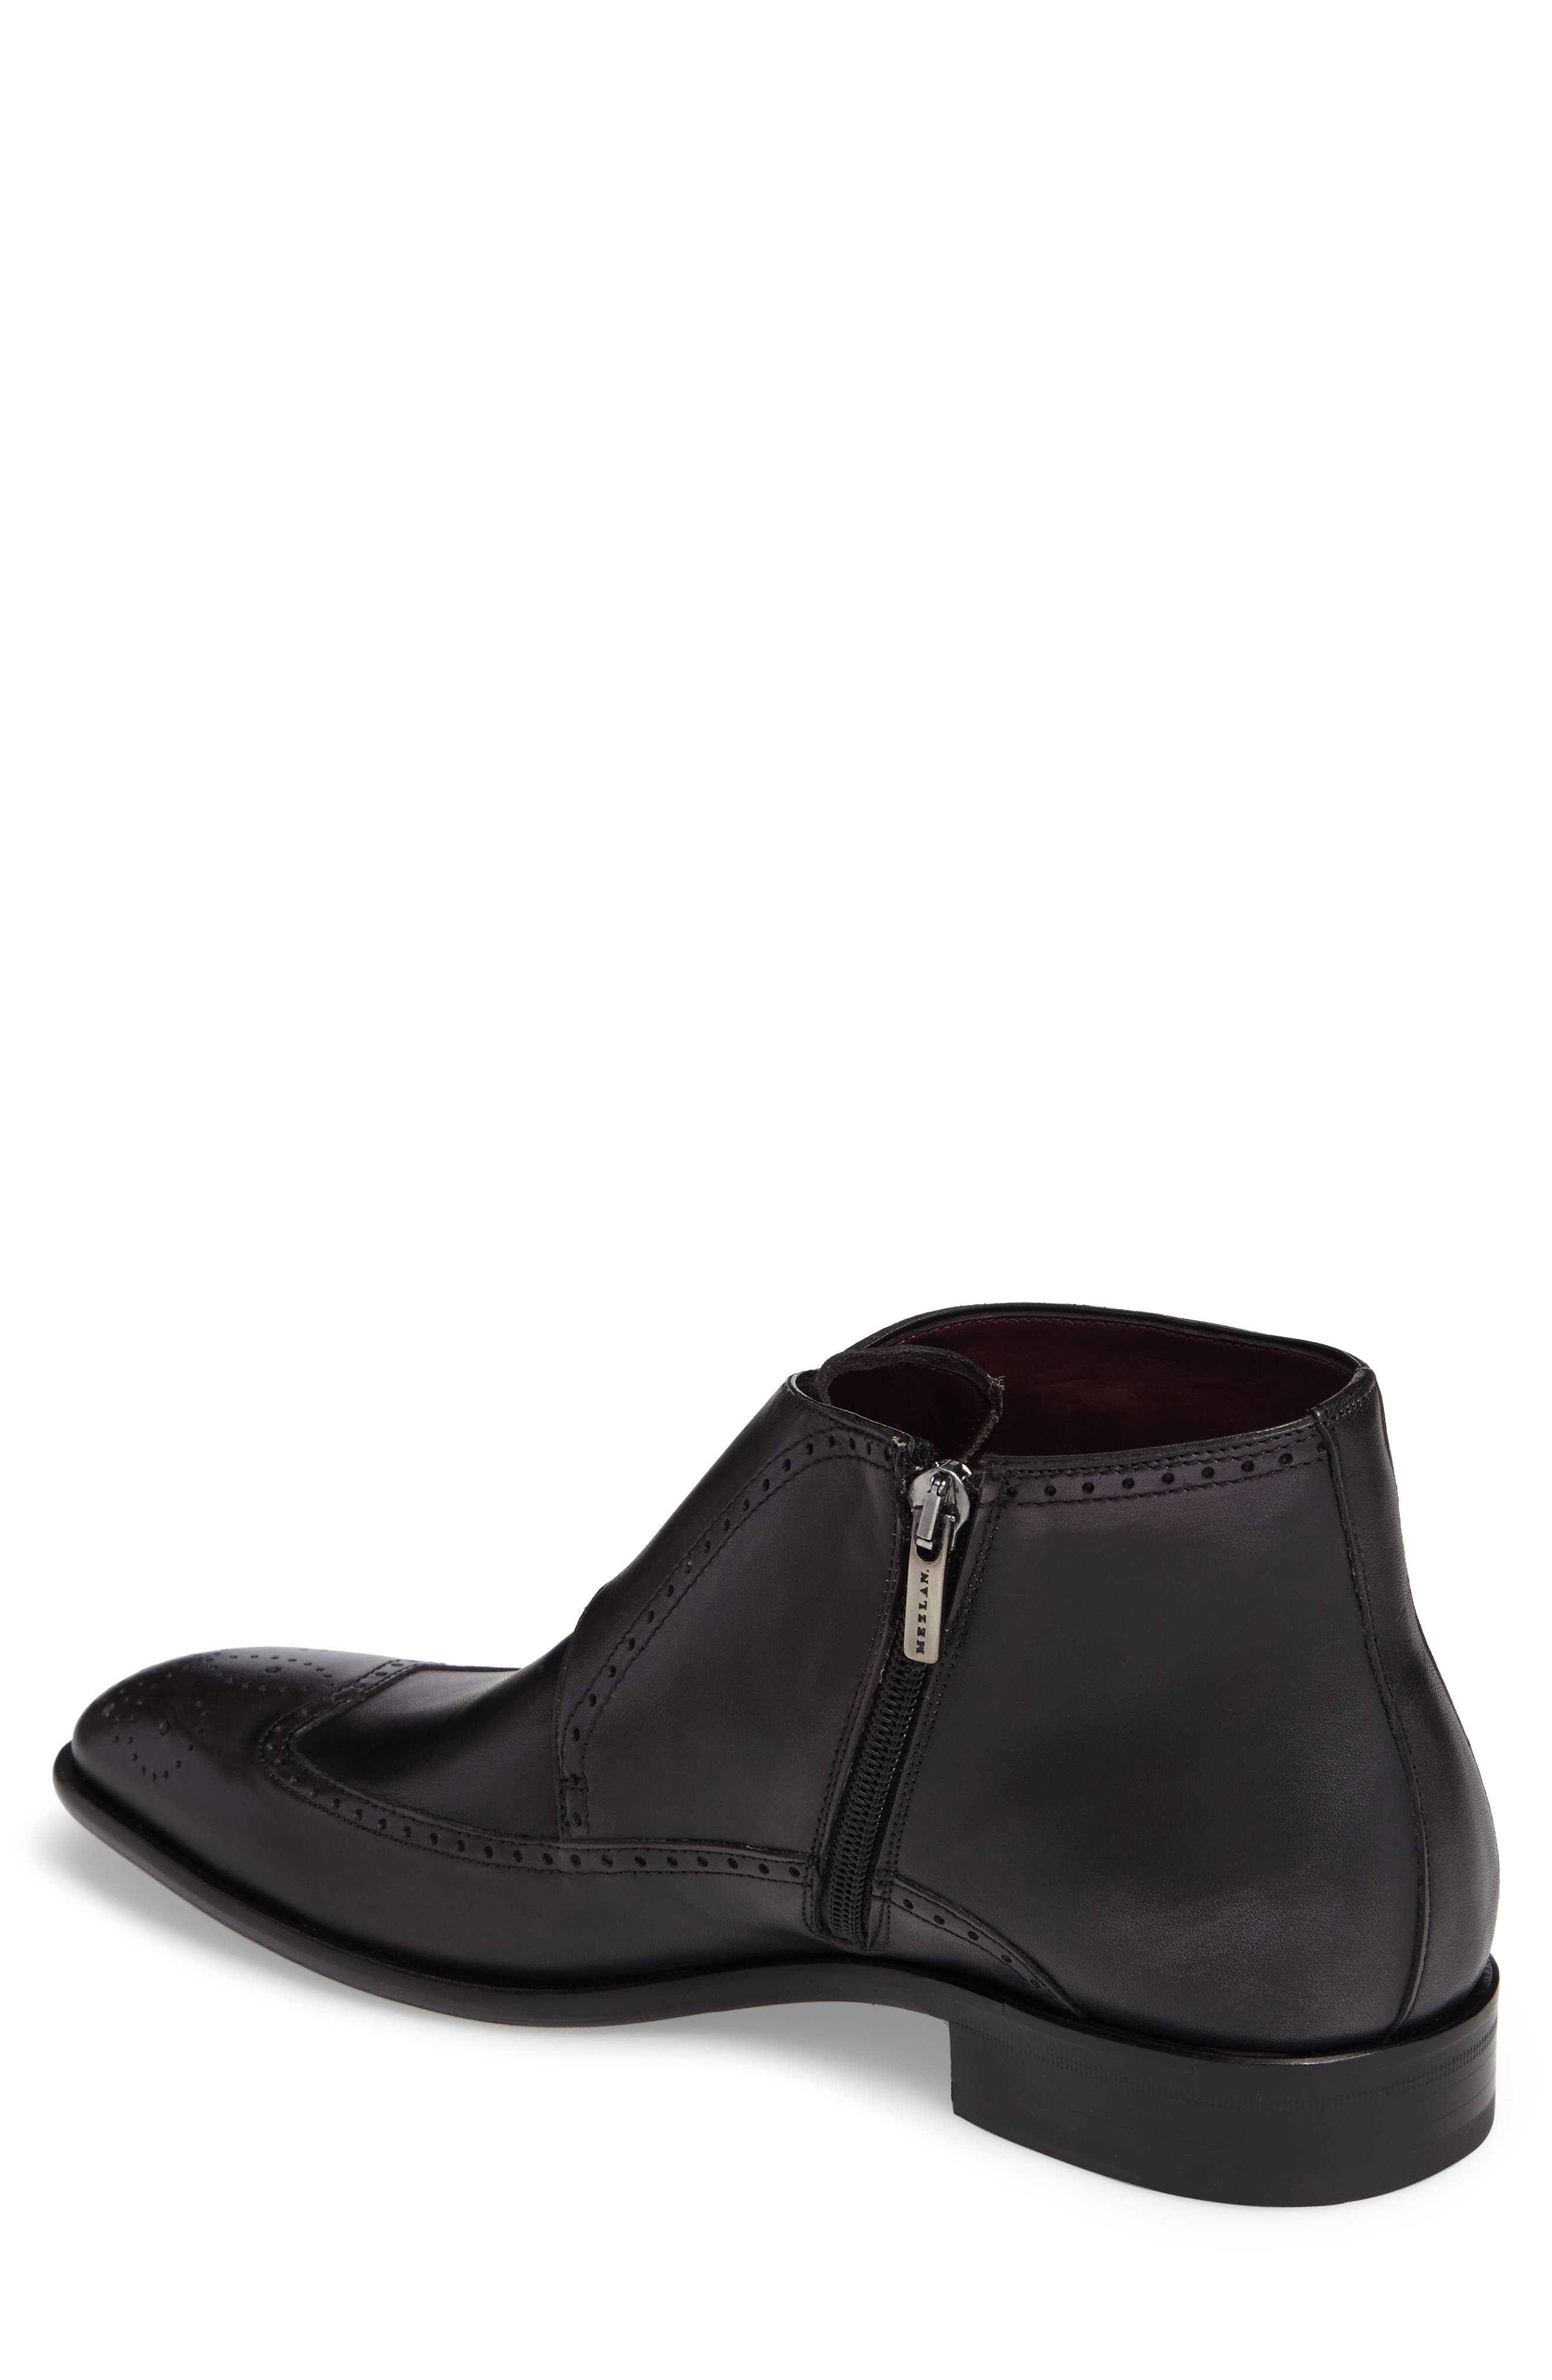 Taberna Double Monk Strap Boot,                             Alternate thumbnail 2, color,                             GRAPHITE LEATHER